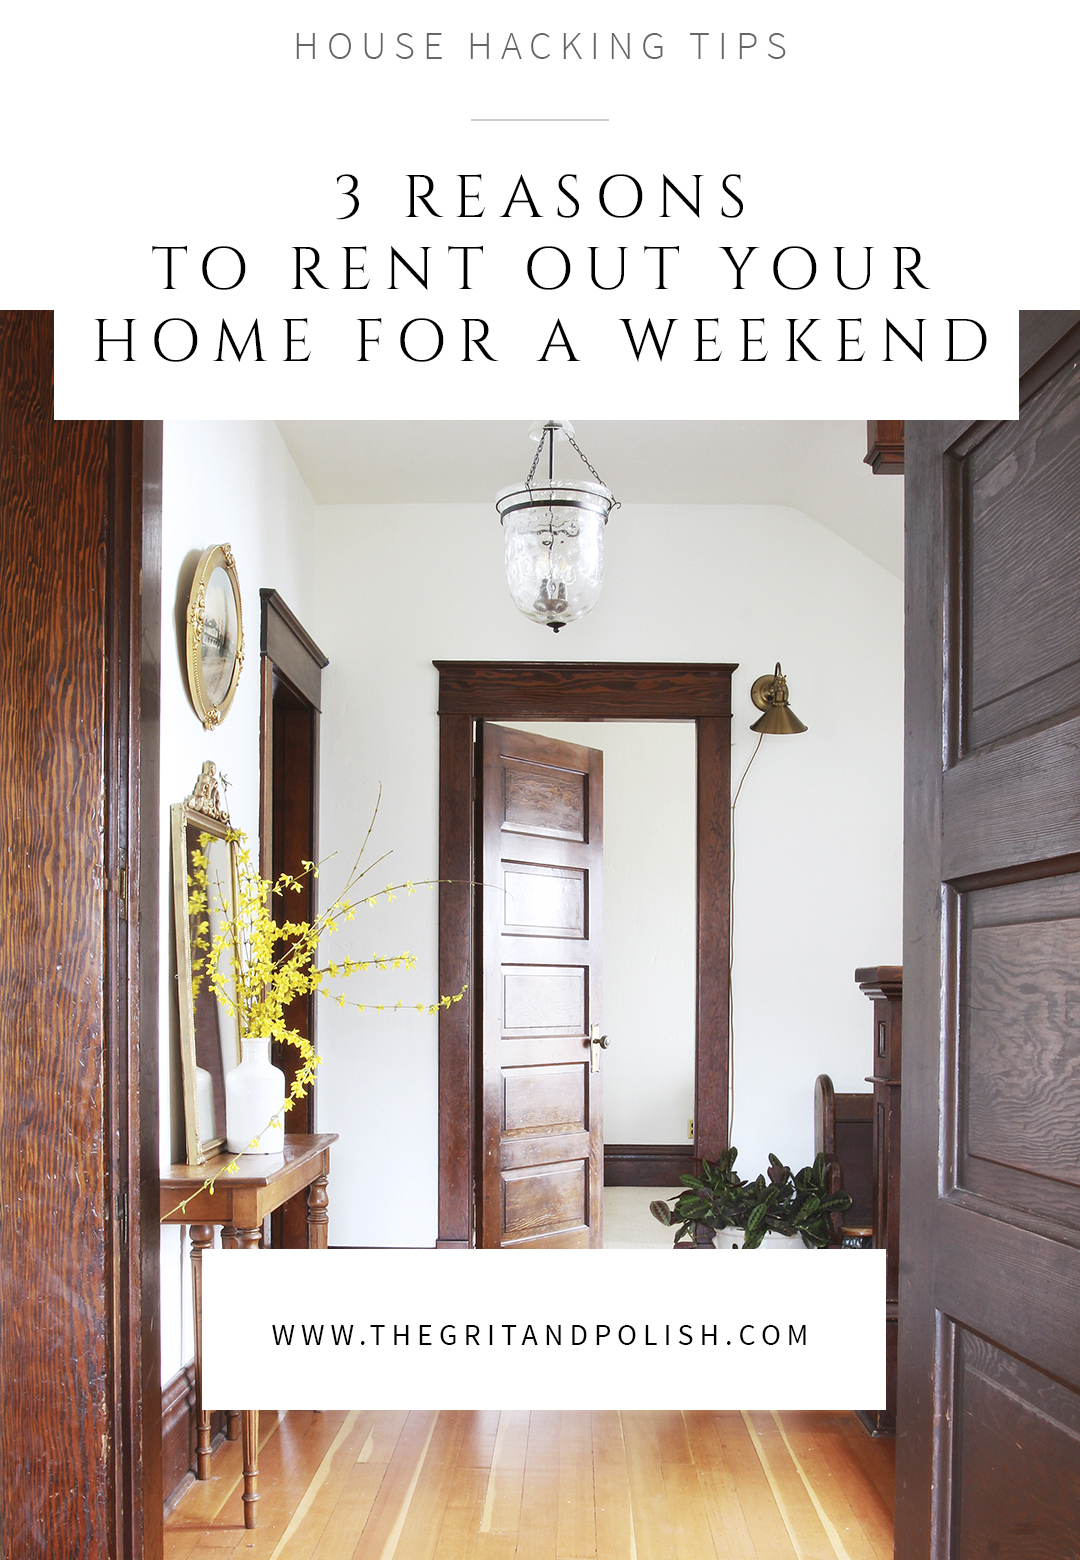 The Grit and Polish - Rent Your Home Out for a weekend TEXT.jpg